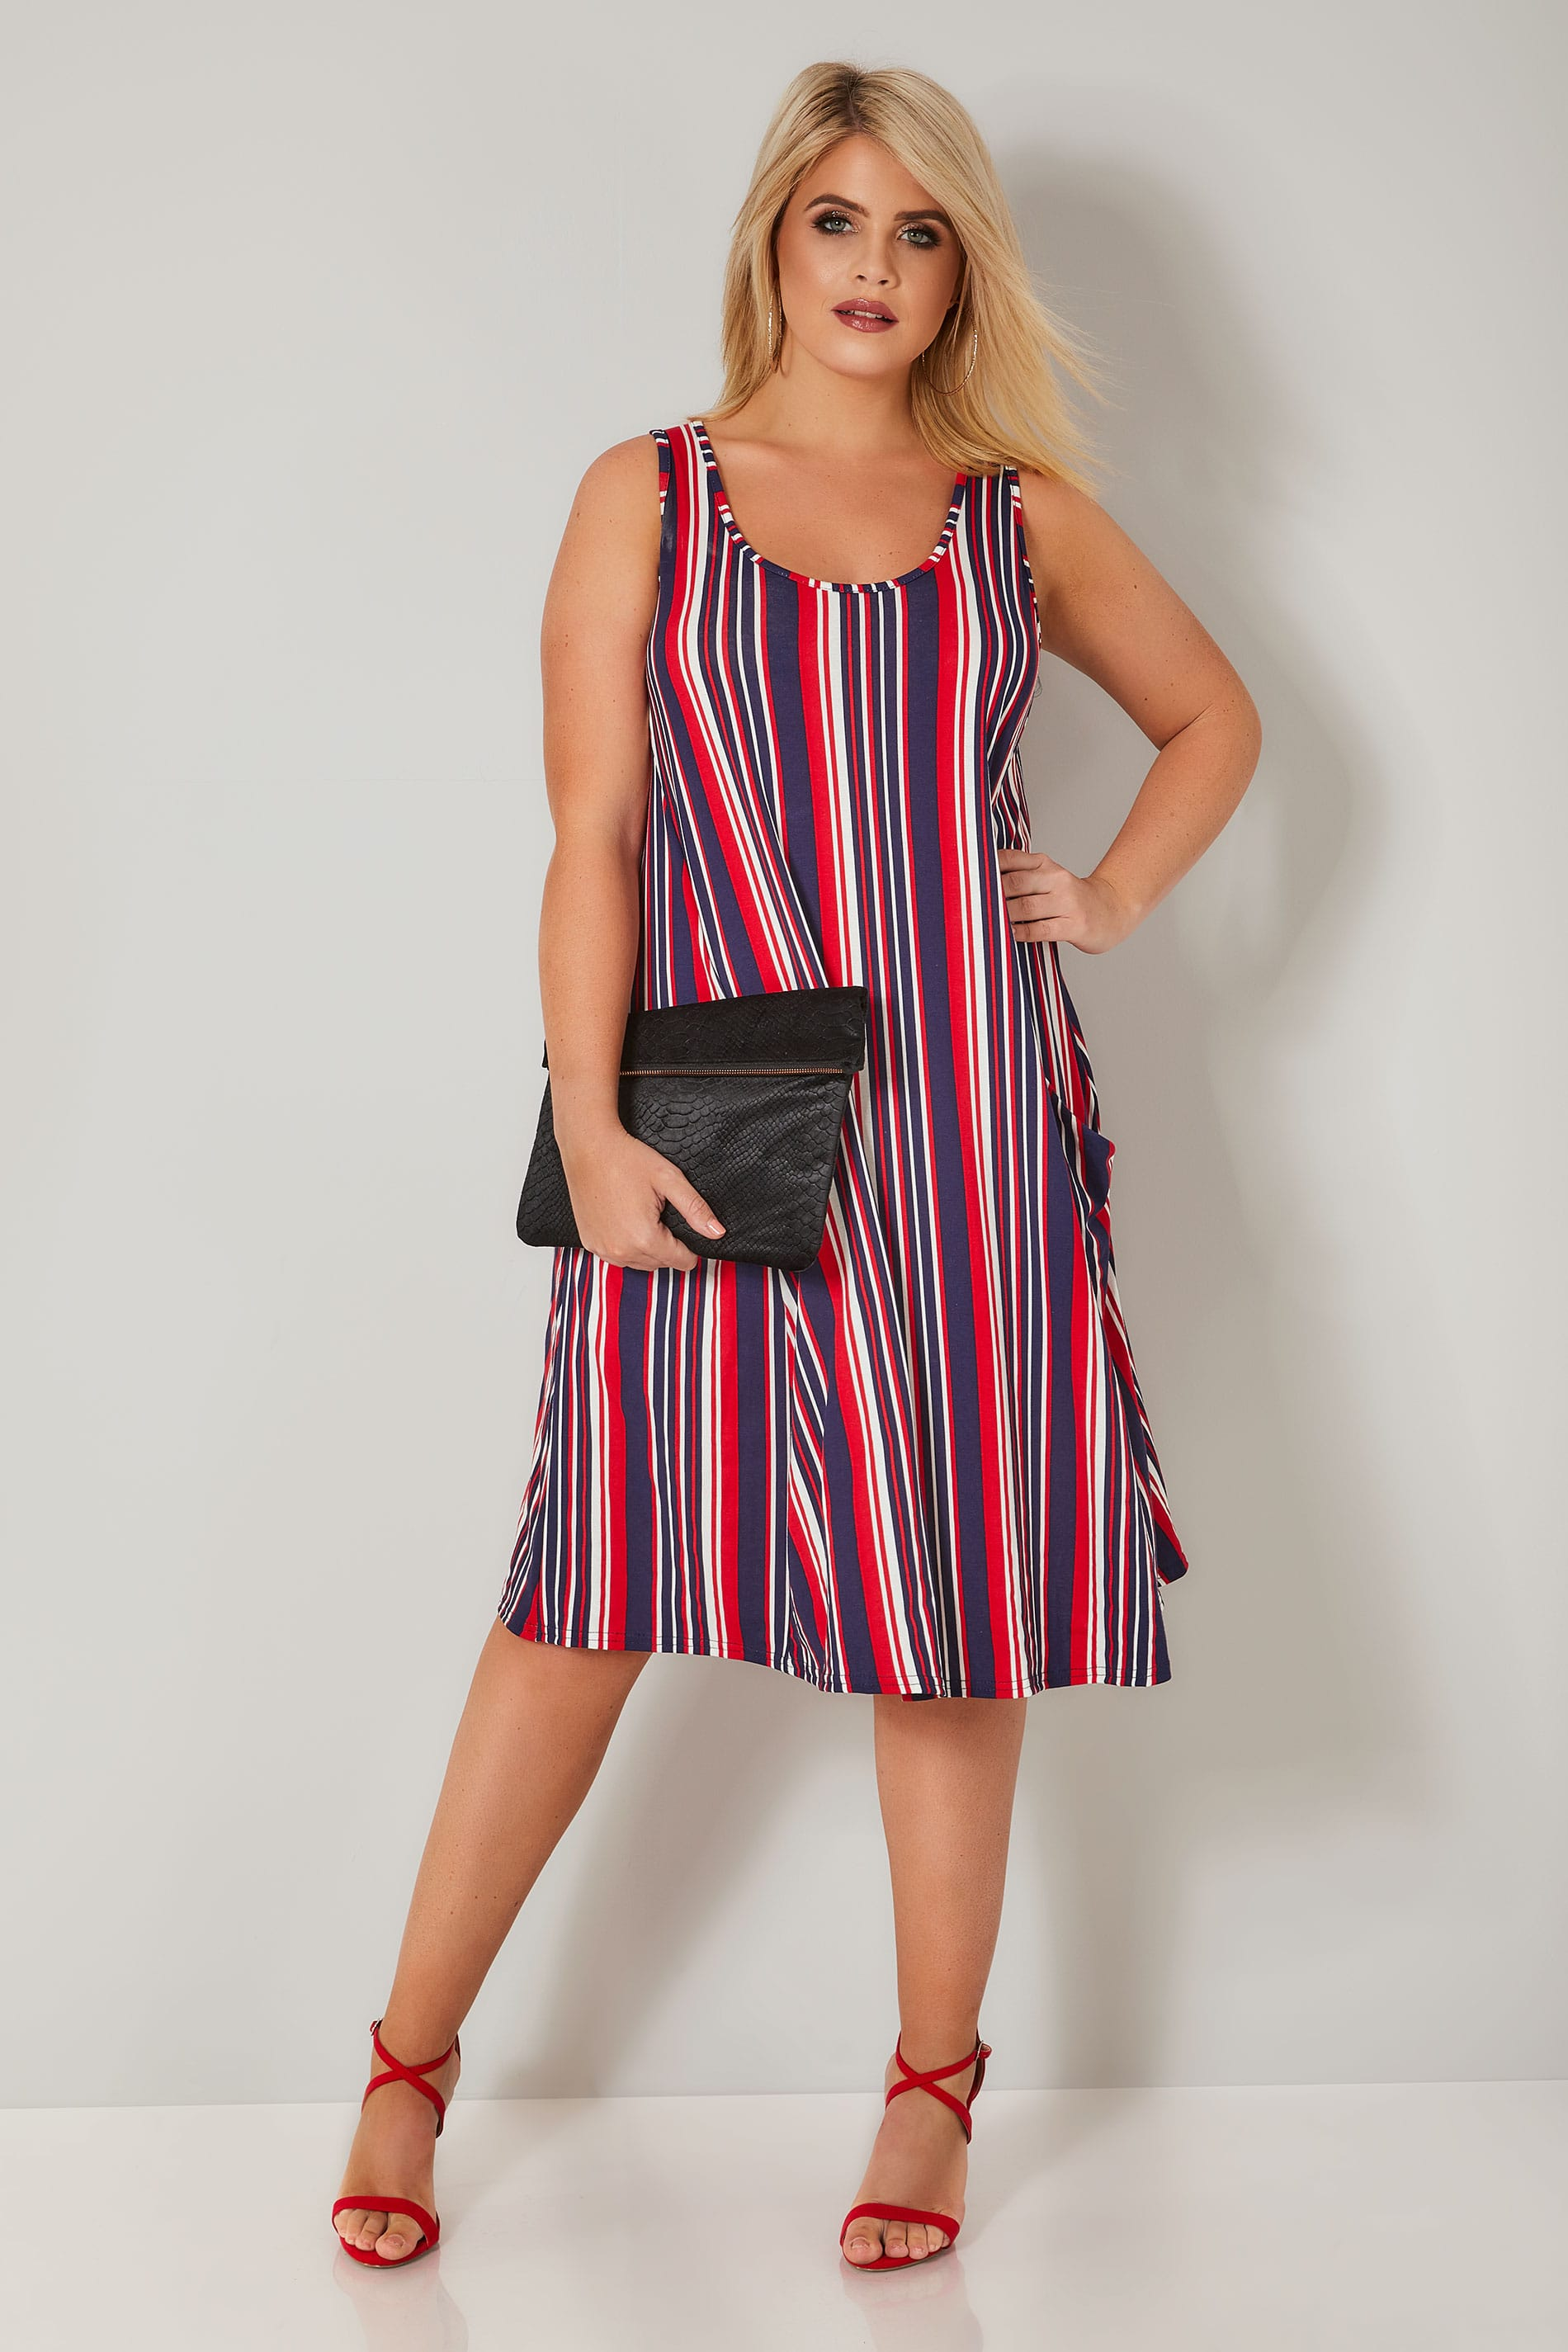 44920b279763 LIMITED COLLECTION Navy, Red & White Stripe Pocket Swing Dress, Plus ...